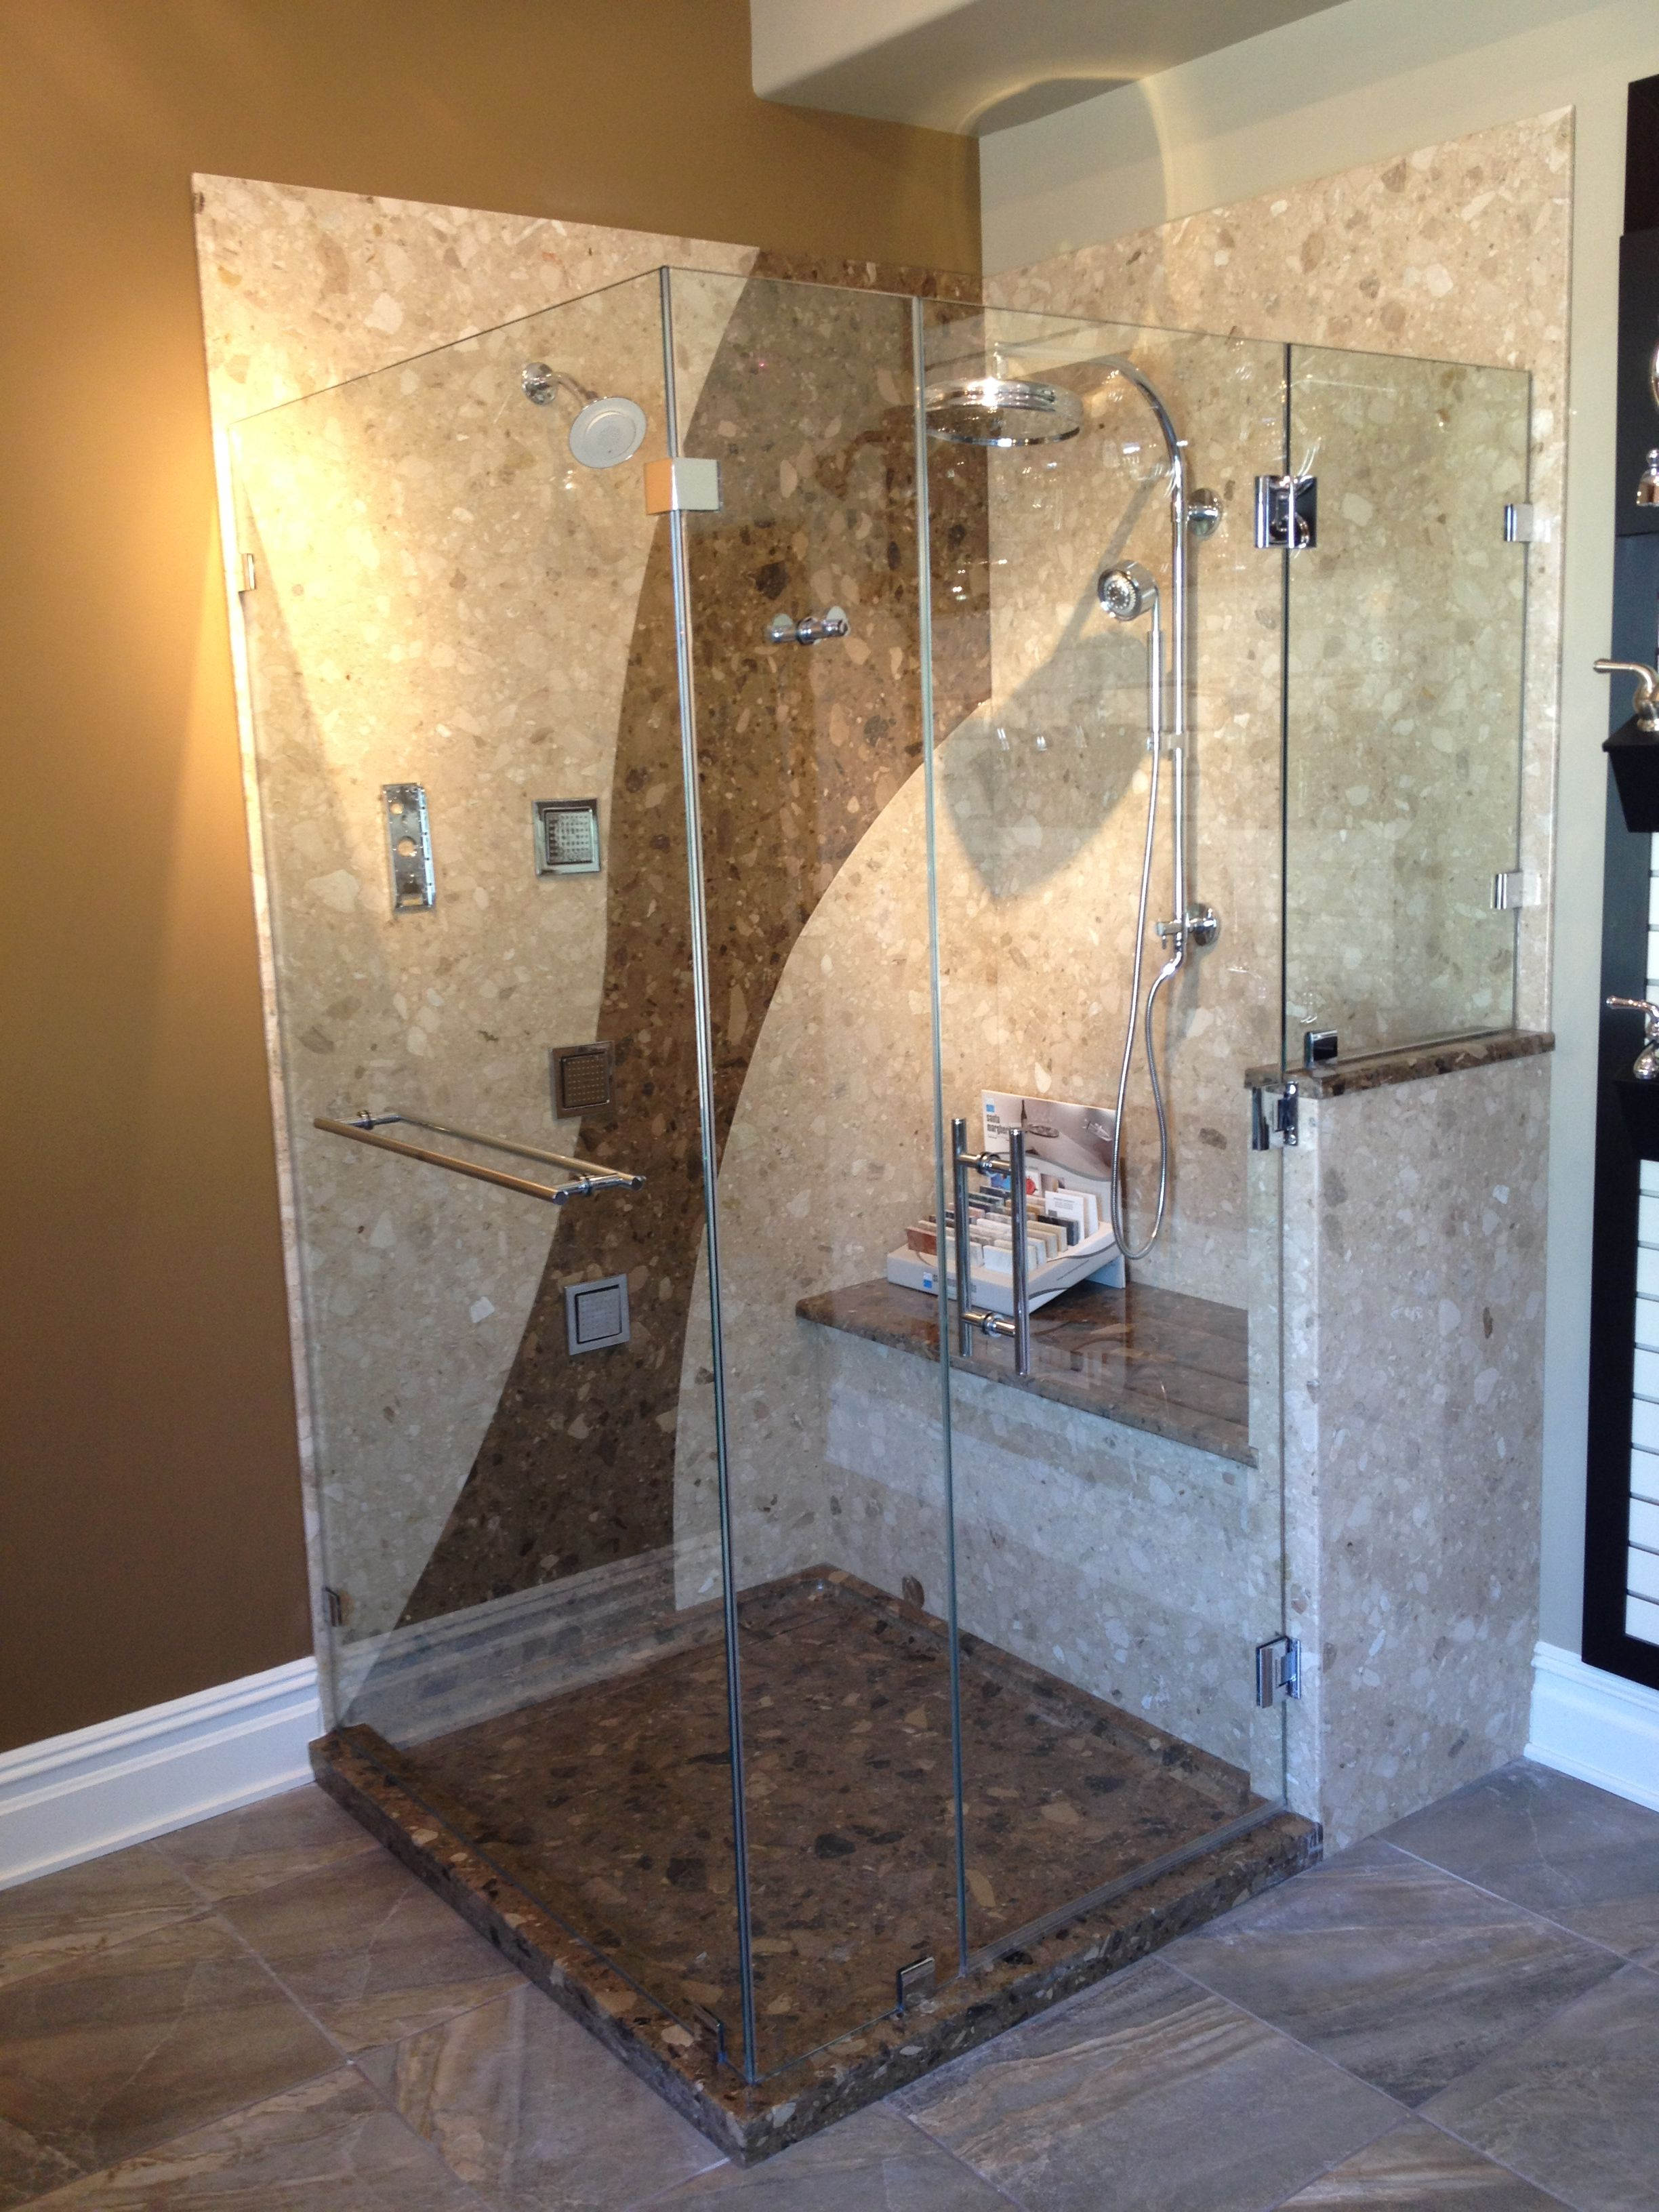 Groutless Stone Shower Surround By Verona Showers Eurostonecraft